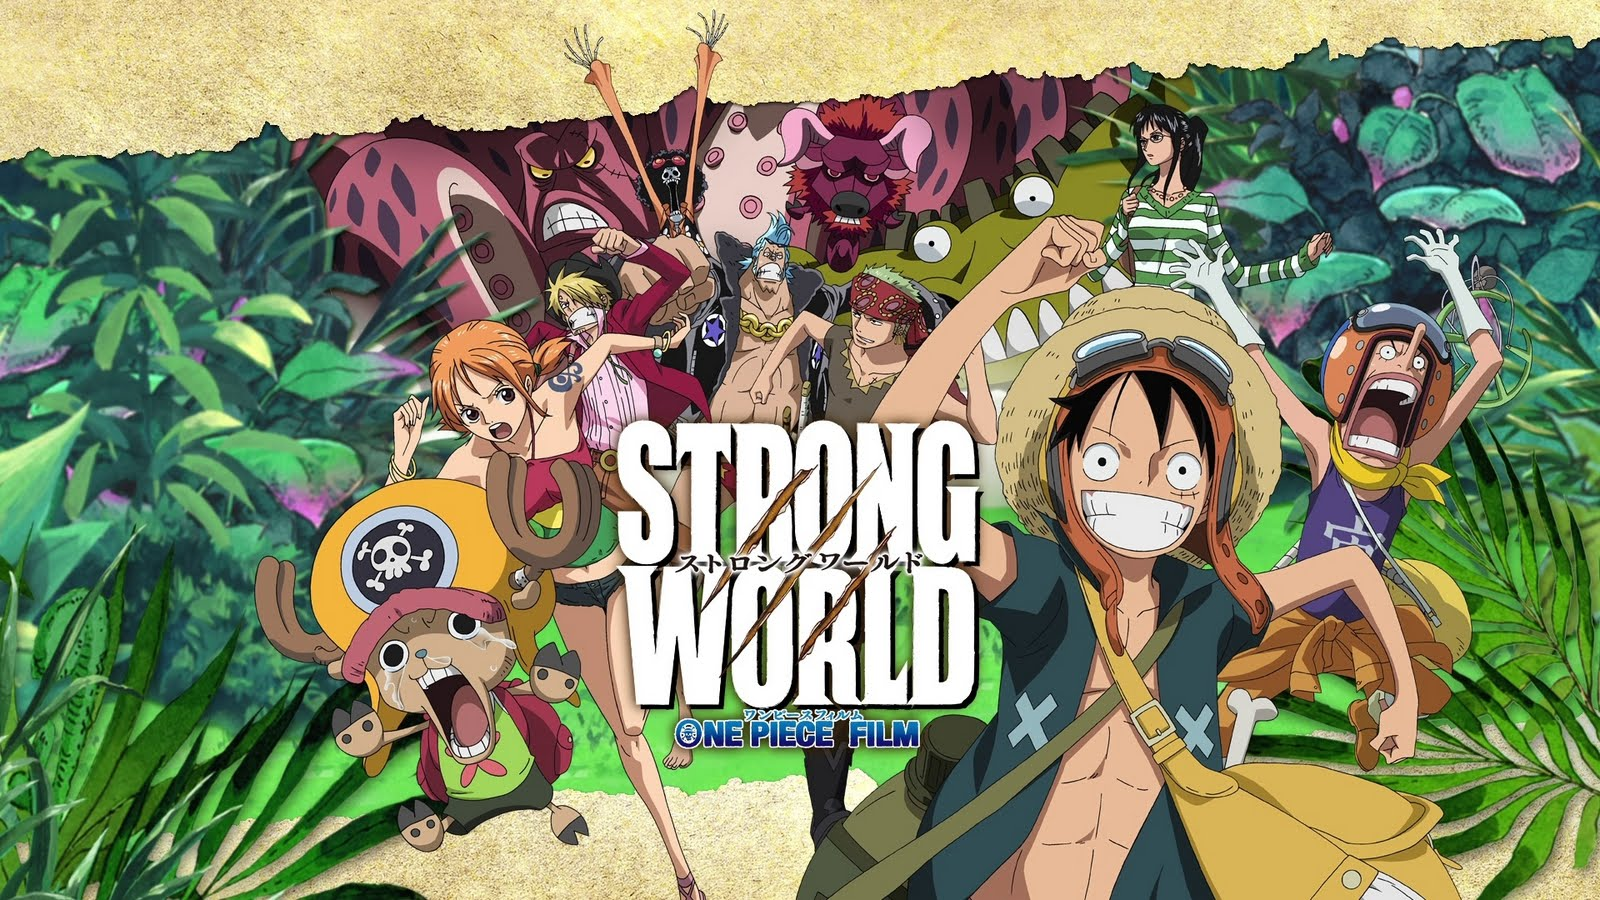 http://4.bp.blogspot.com/-skBt-yzG6hc/TmYmRONBn-I/AAAAAAAAA_4/TdaAl4AtlC4/s1600/strong-world-one-piece-film-HD.jpg